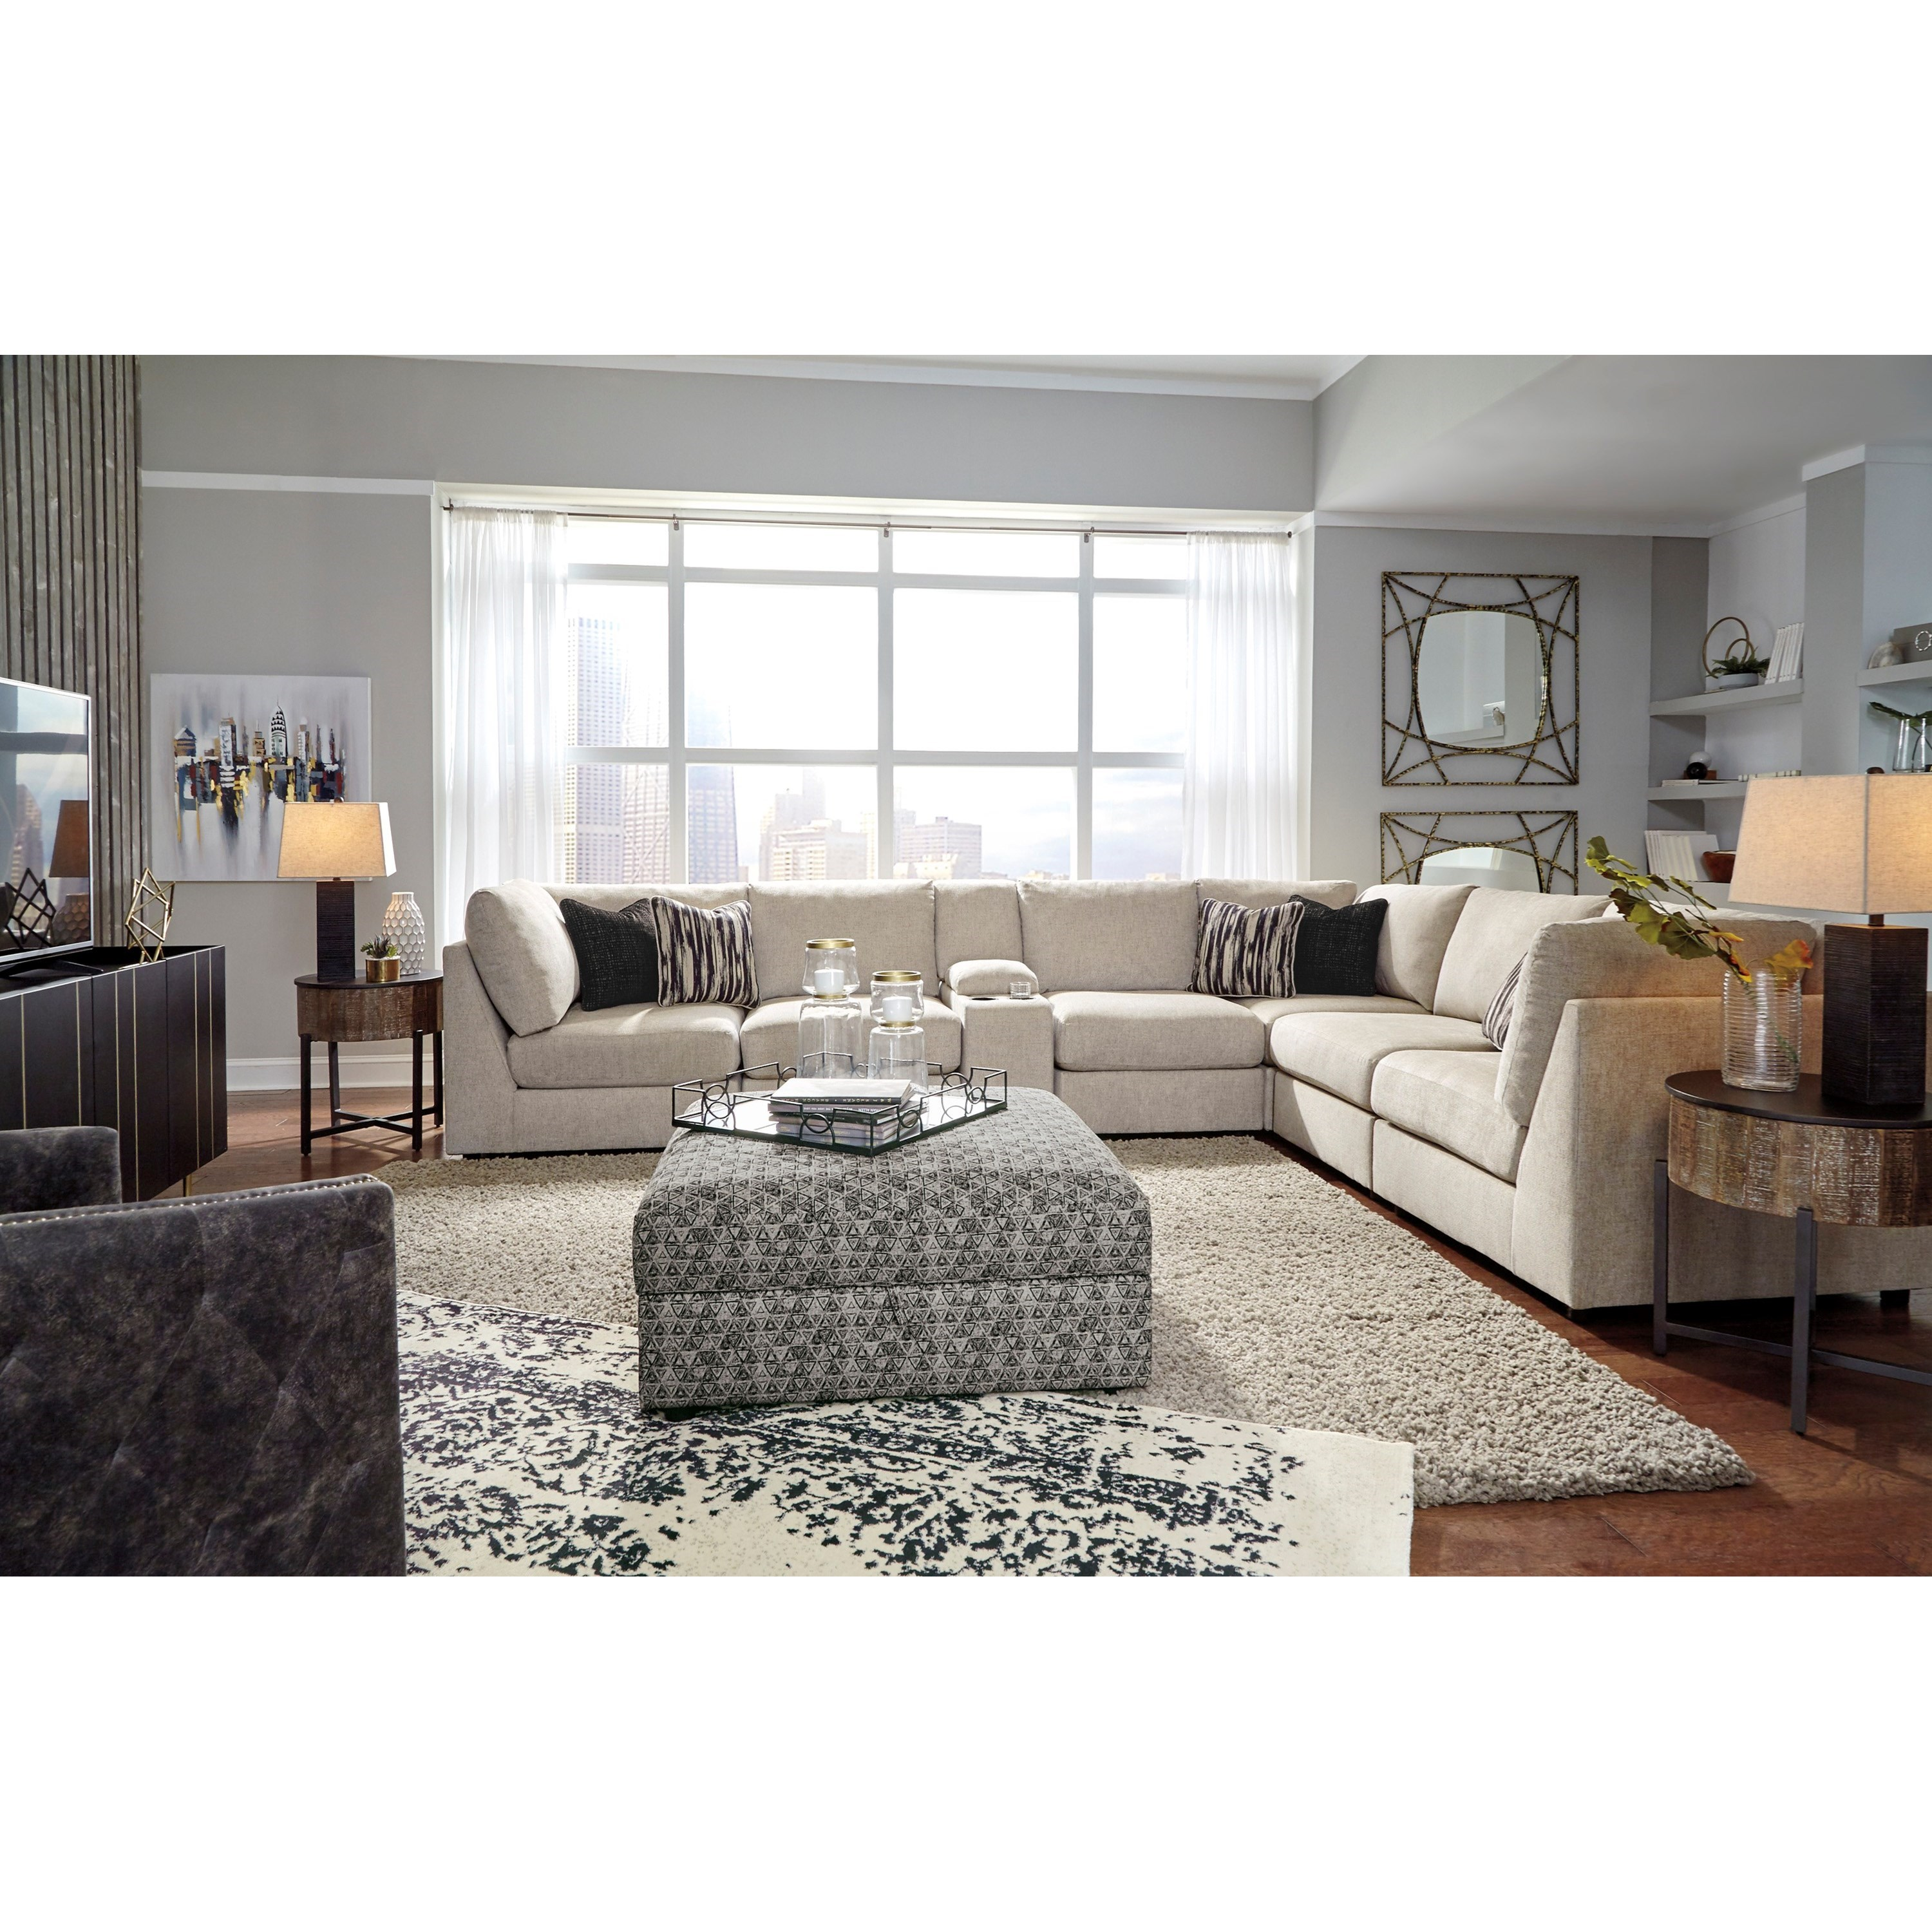 Kellway Living Room Group by Signature Design by Ashley at Northeast Factory Direct